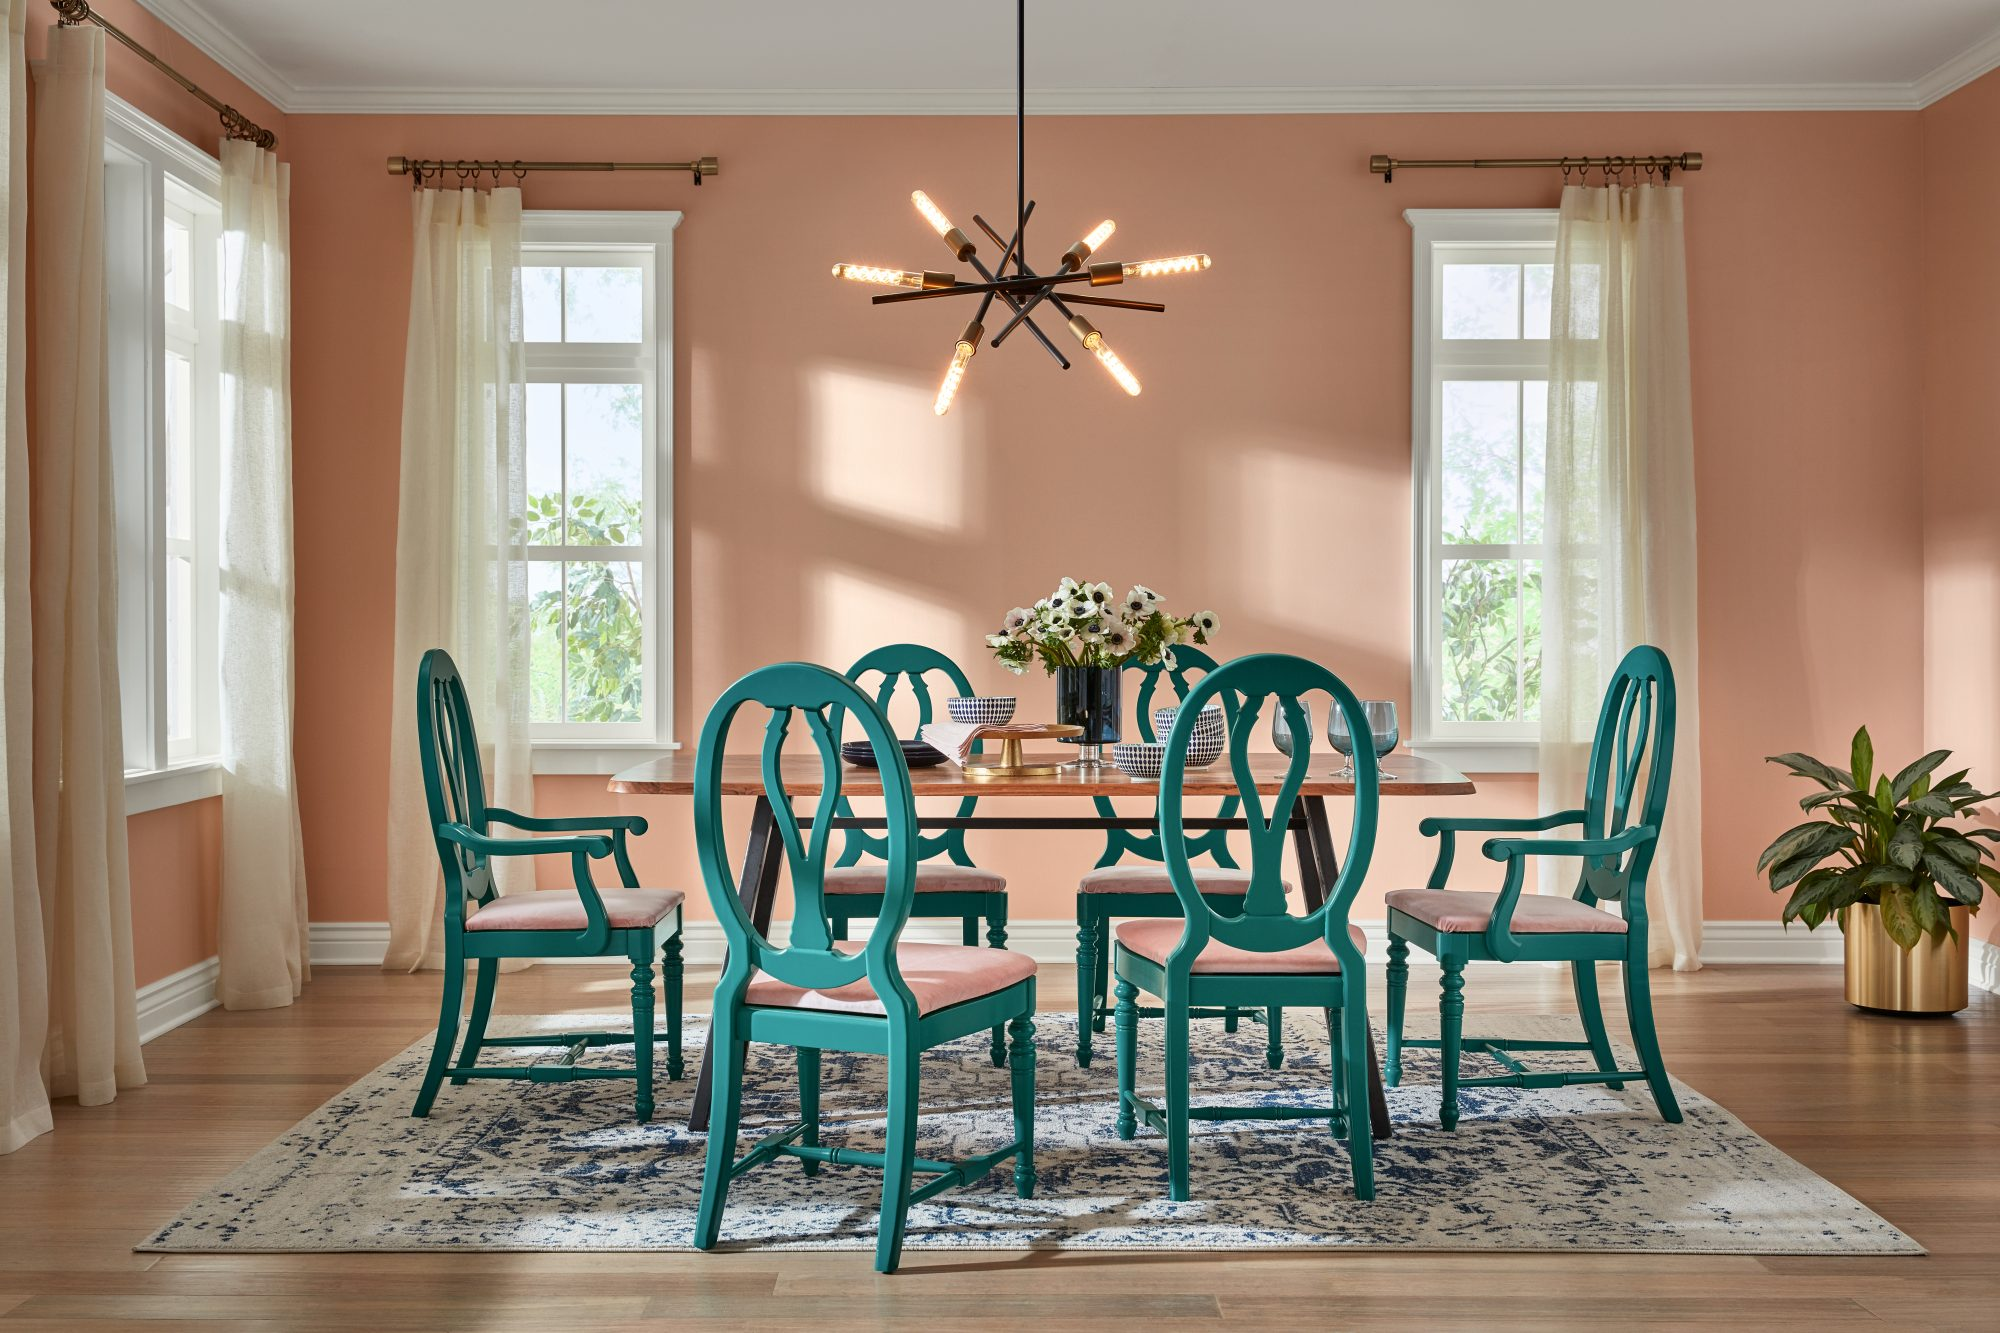 HGTV 2020 Color of the Year